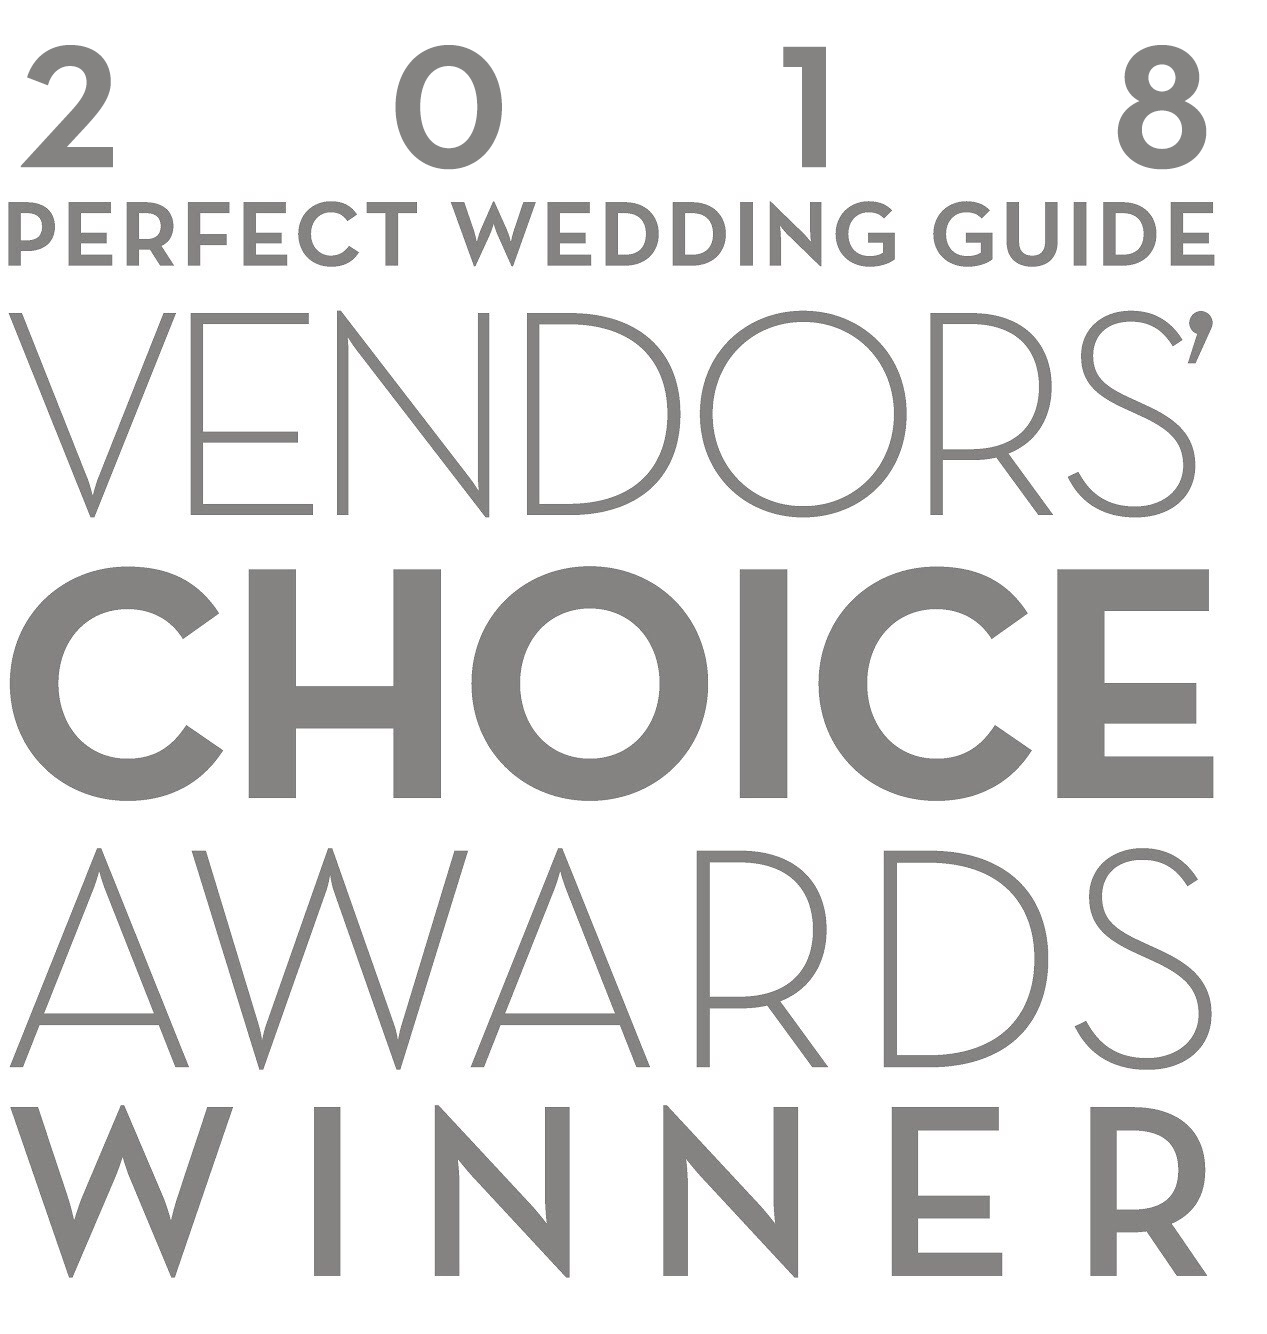 best of weddings award presented by orlando wedding magazine dj awards & recognition